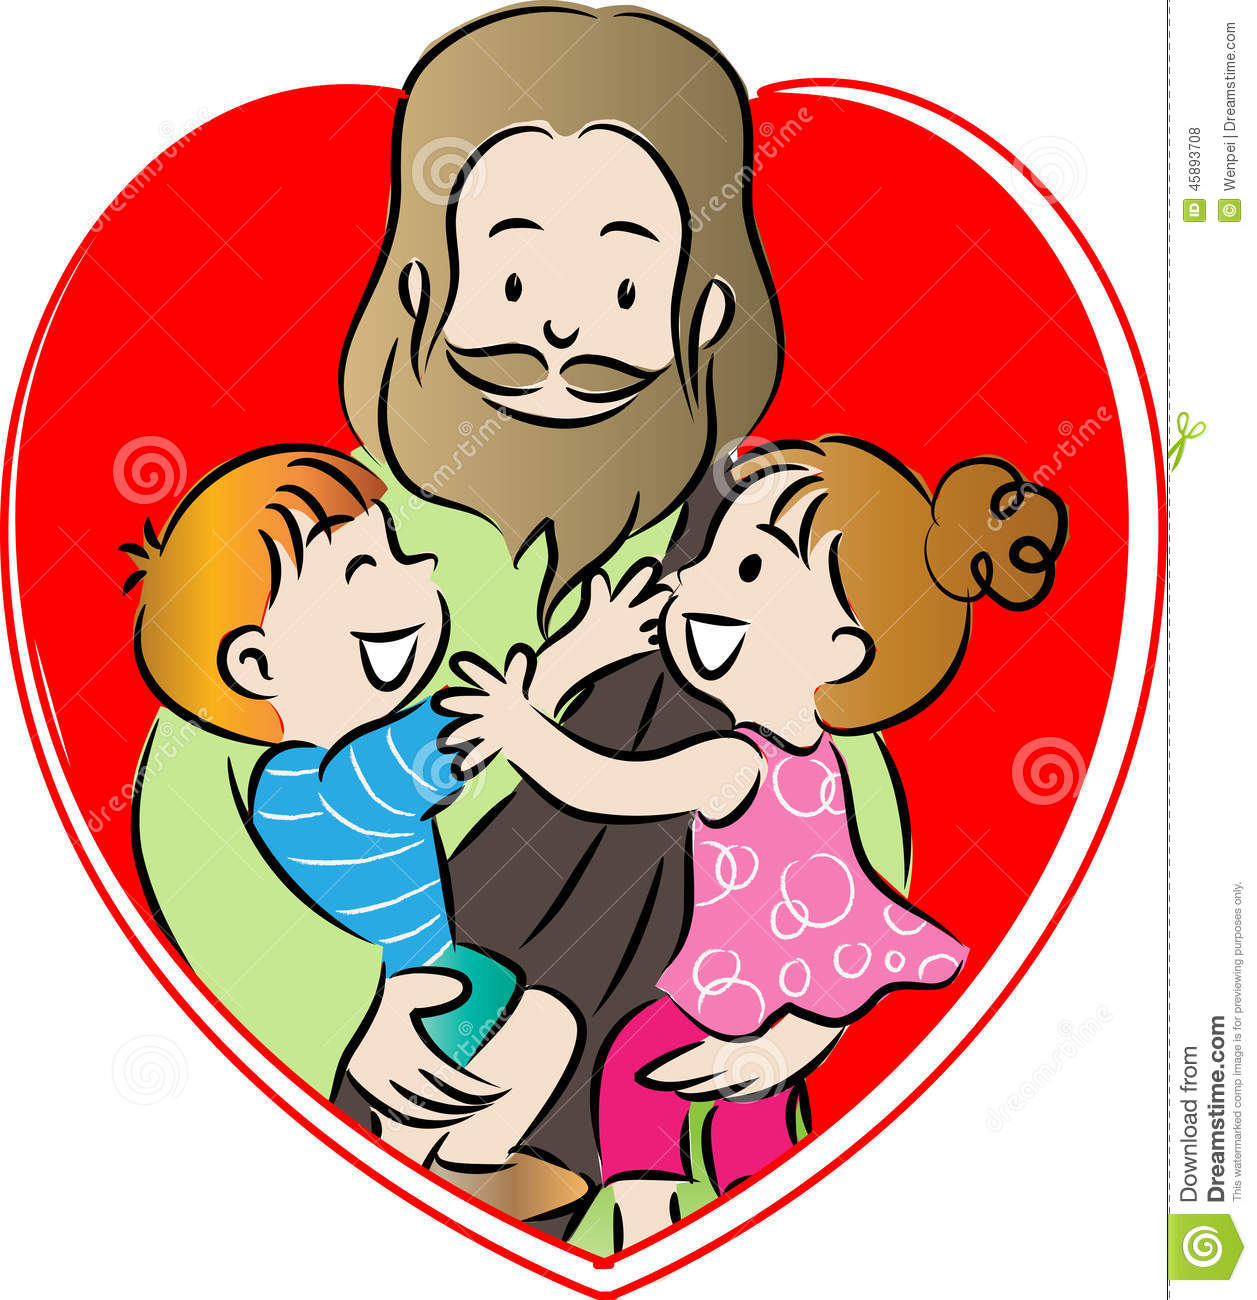 Jesus kids clipart graphic freeuse download Jesus Clipart For Kids | Free download best Jesus Clipart For Kids ... graphic freeuse download